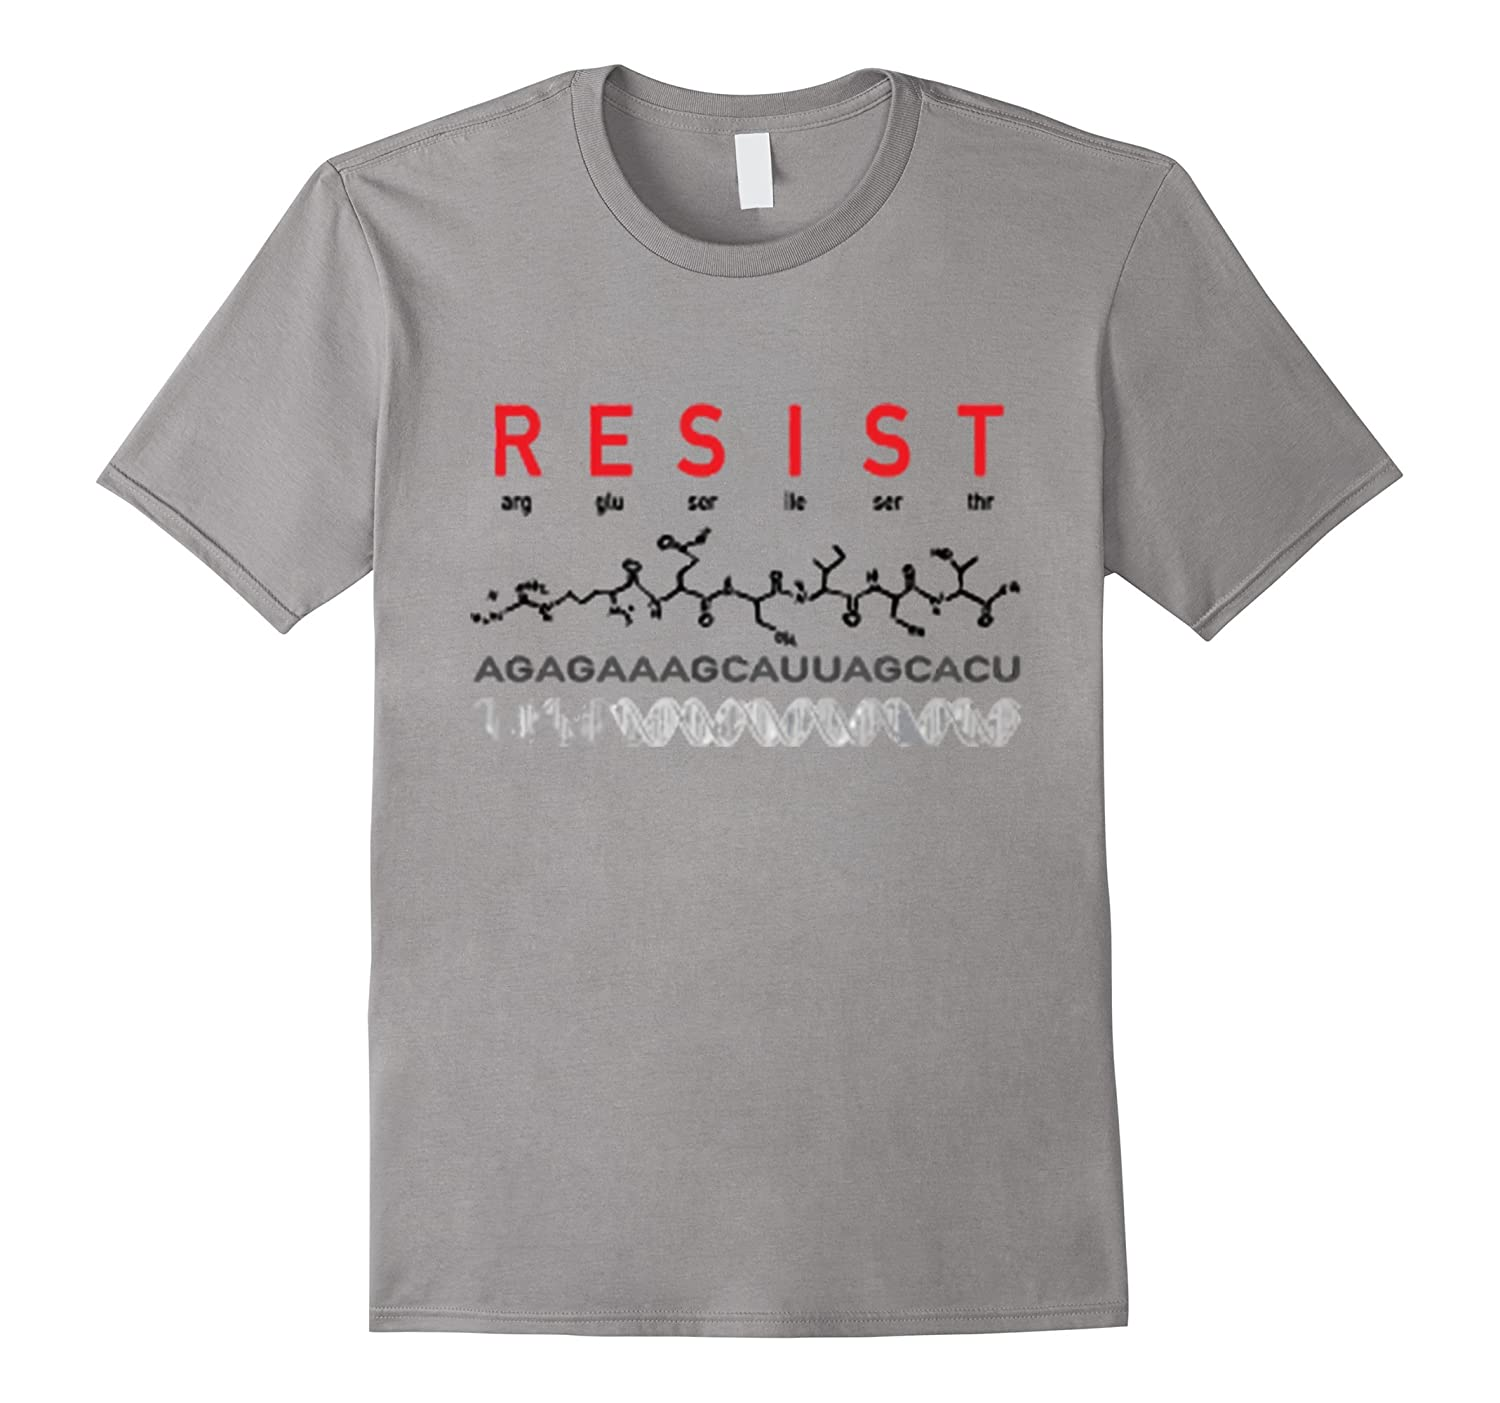 RESIST (peptide) TShirt - Science March Earth Scientists TS-TH